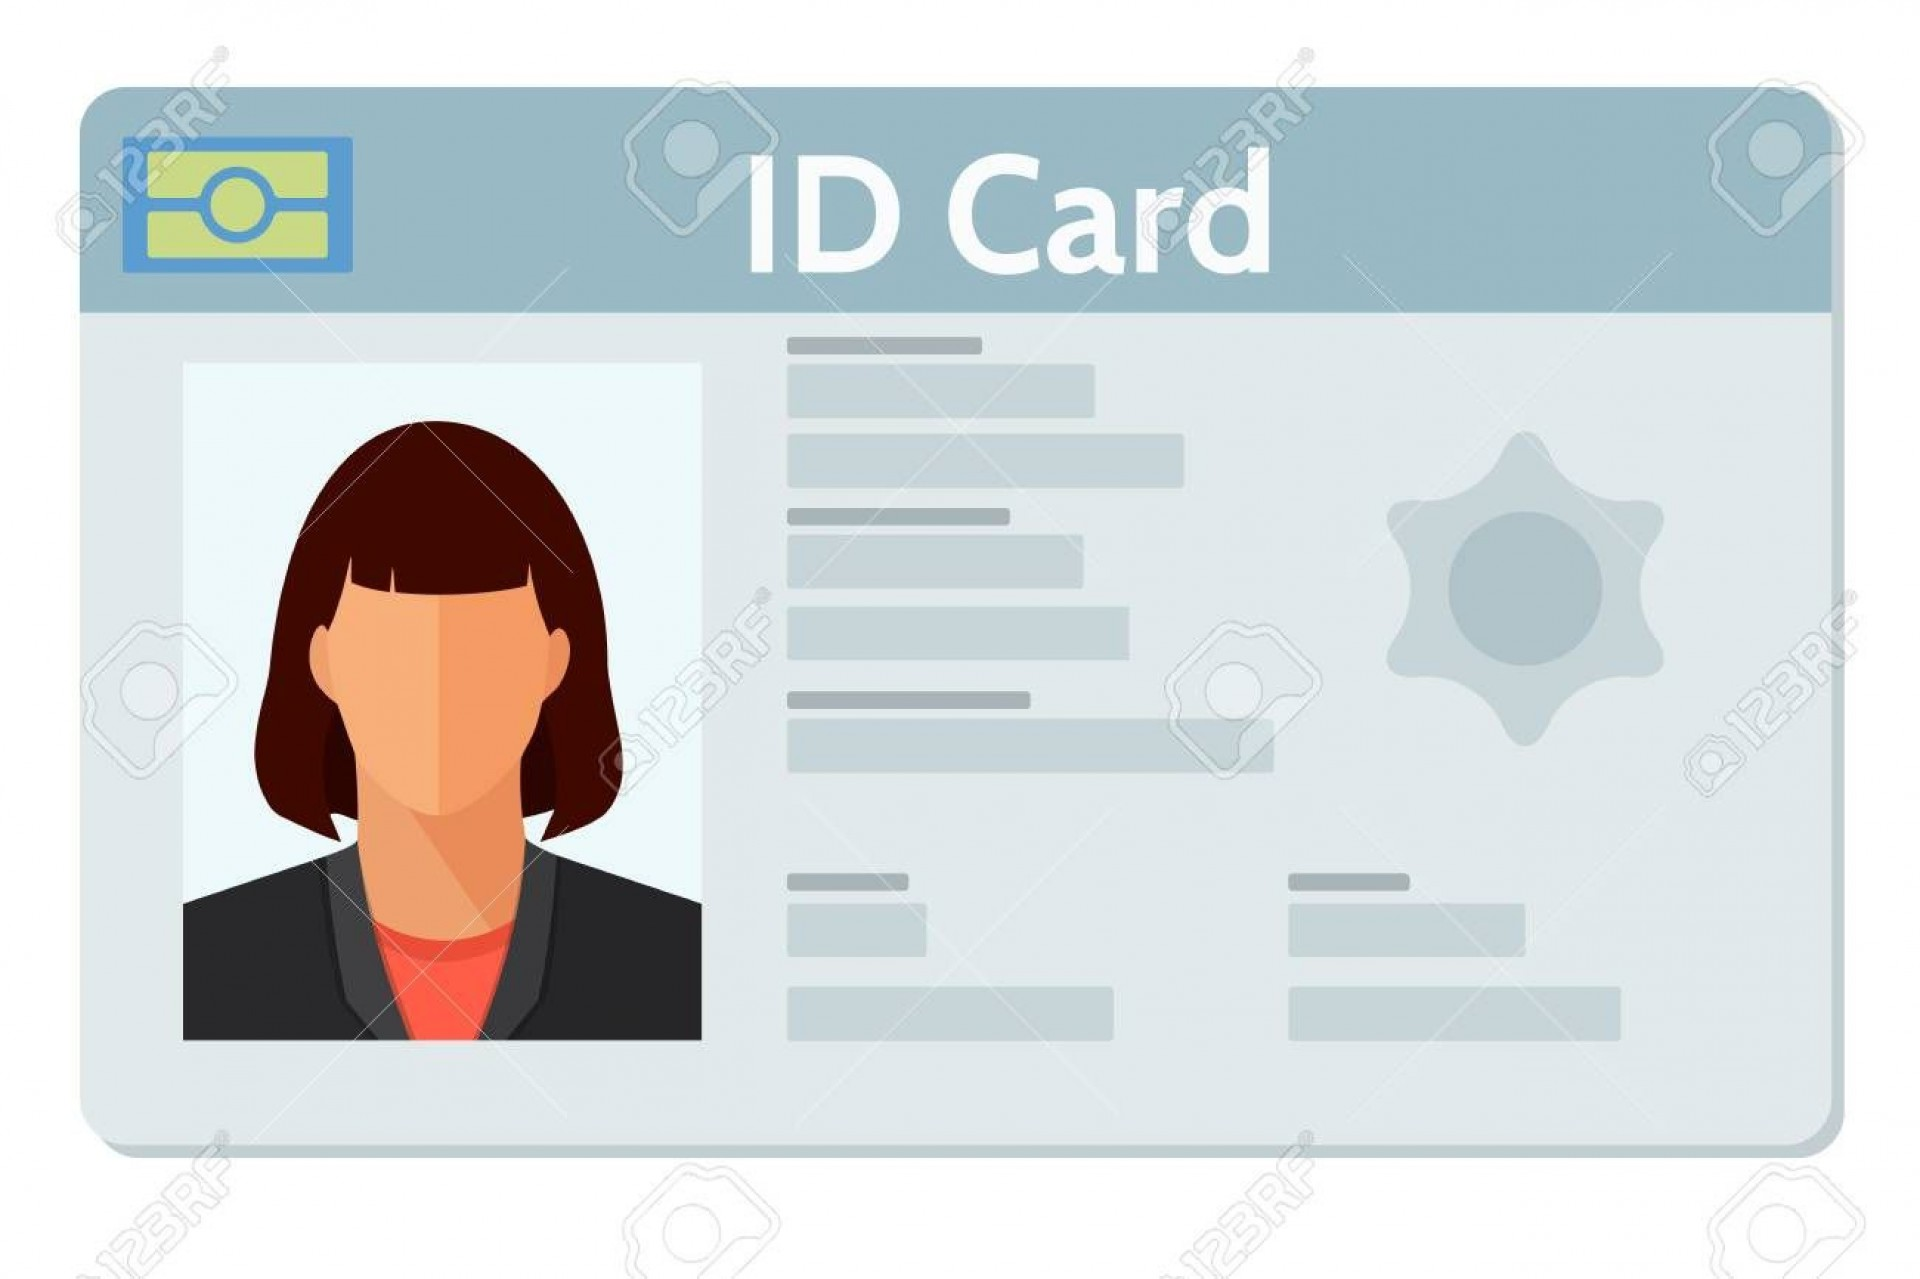 005 Magnificent Student Id Card Template Picture  Design Free Download Word Employee Microsoft Vertical Identity Psd1920